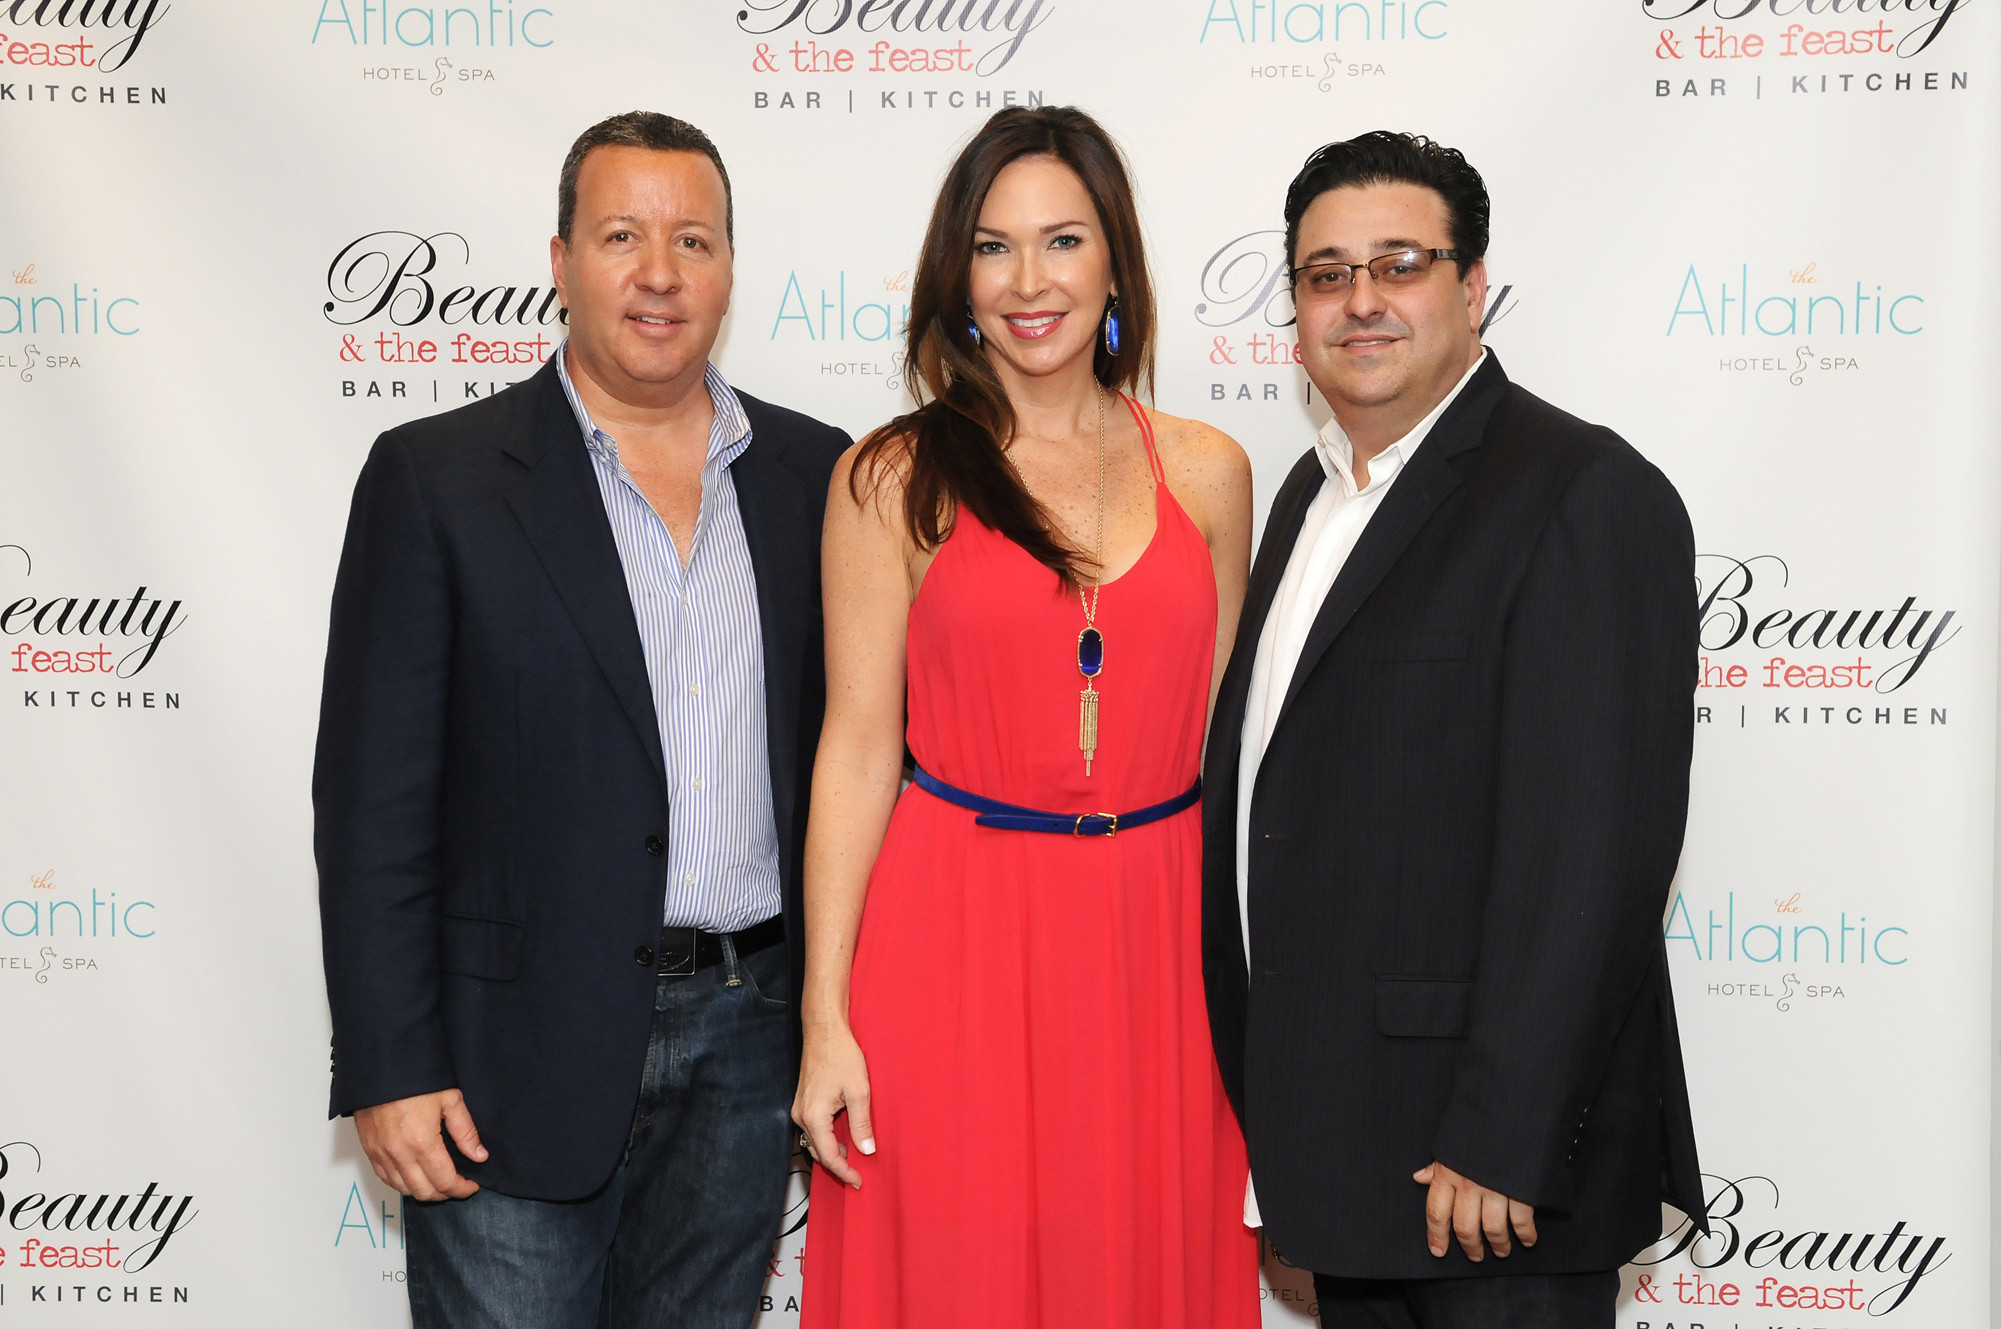 Society Scene photos - Rob Kaliner, owner of The Atlantic Hotel & Spa with Susan and Steven Dapuzzo of Beauty & the Feast